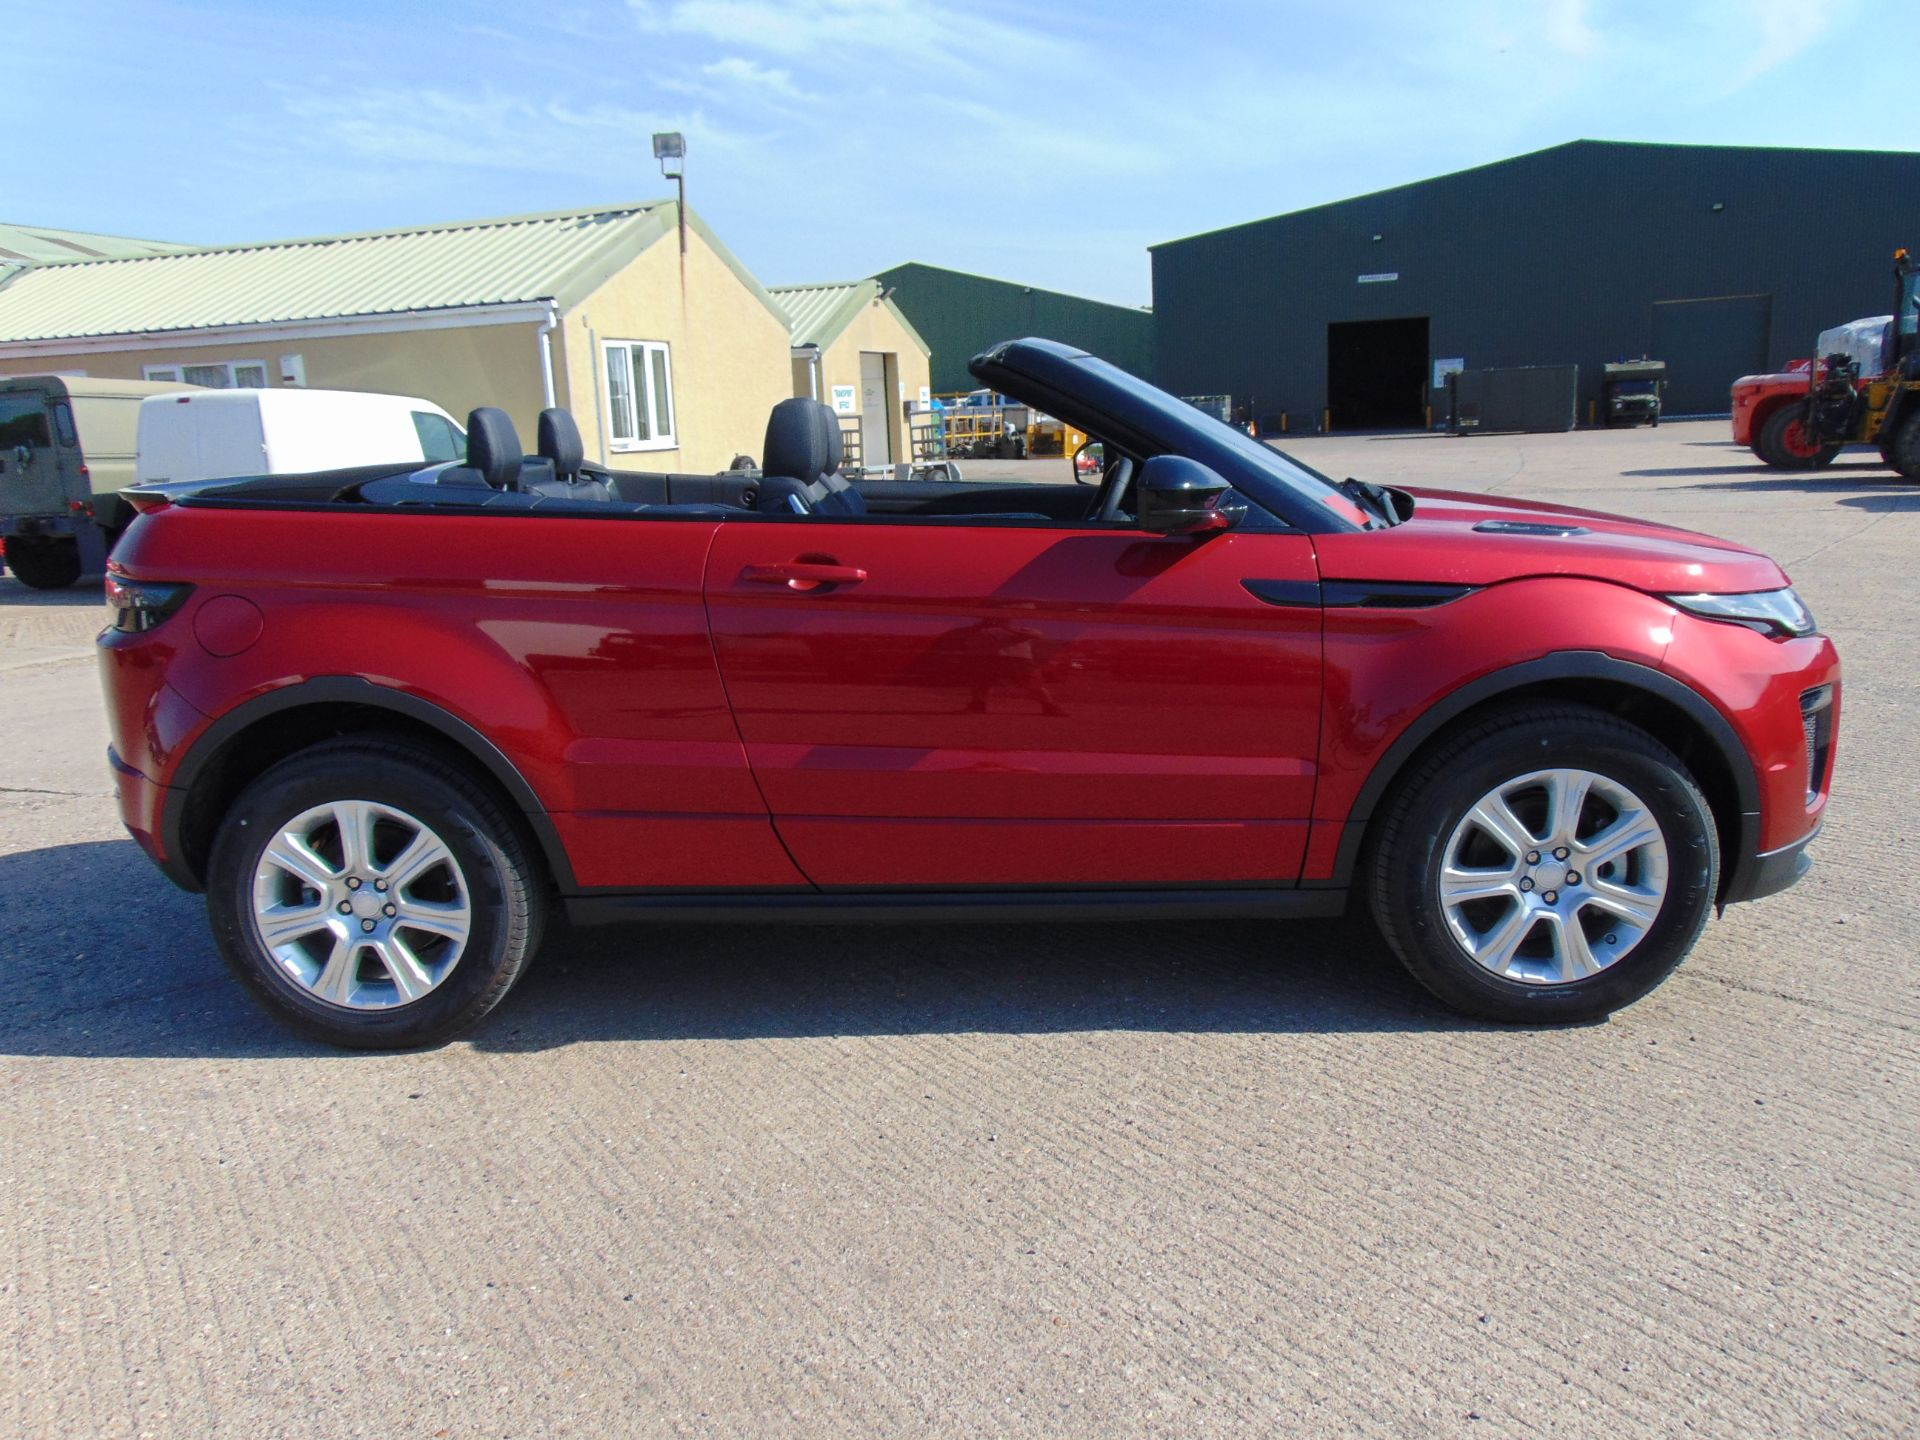 Lot 37 - NEW UNUSED Range Rover Evoque 2.0 i4 HSE Dynamic Convertible